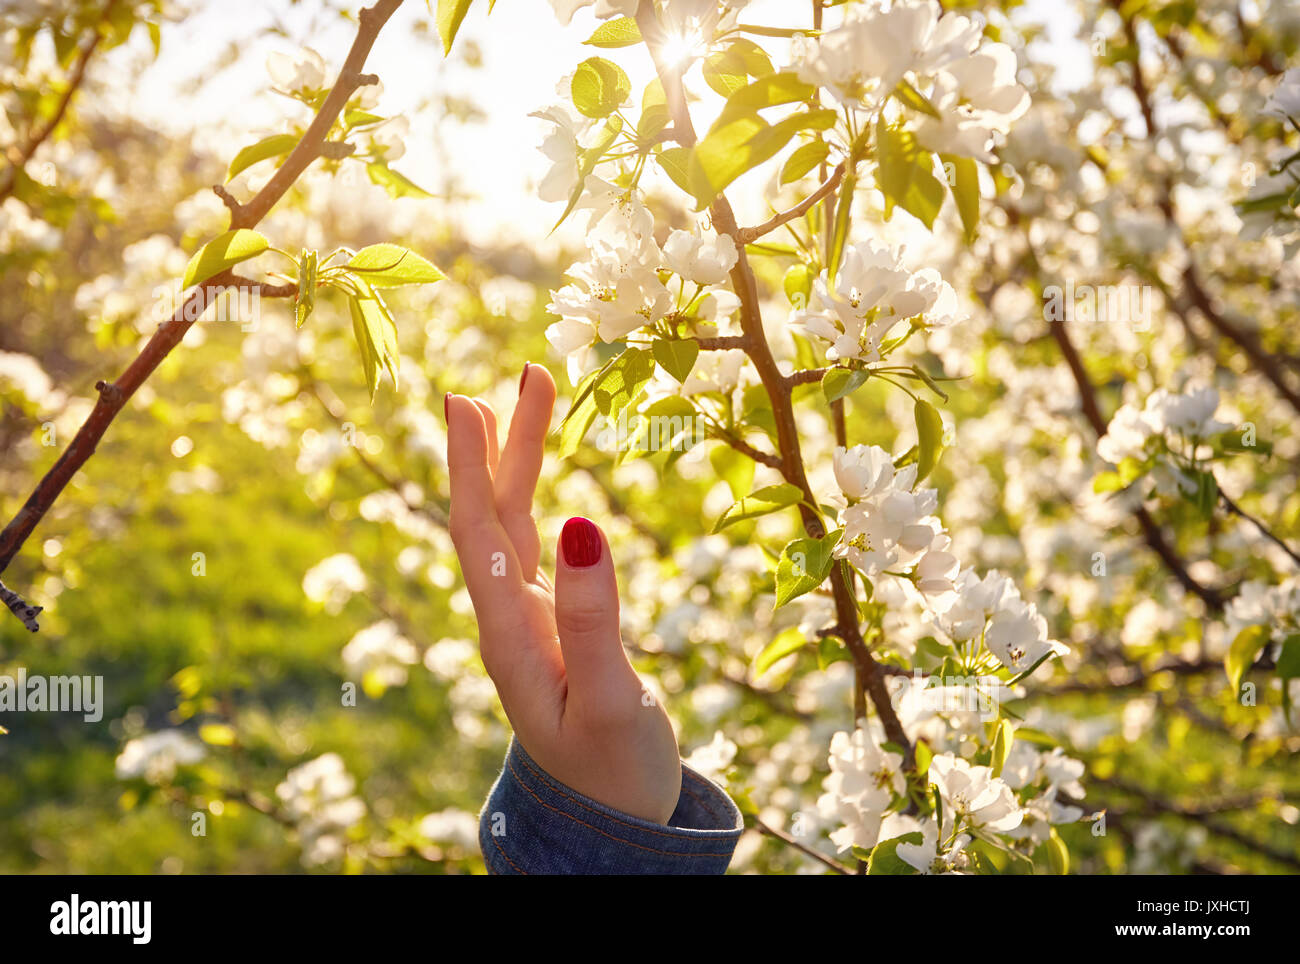 Woman touching flowers of blossom cherry by her hand spring season woman touching flowers of blossom cherry by her hand spring season concept mightylinksfo